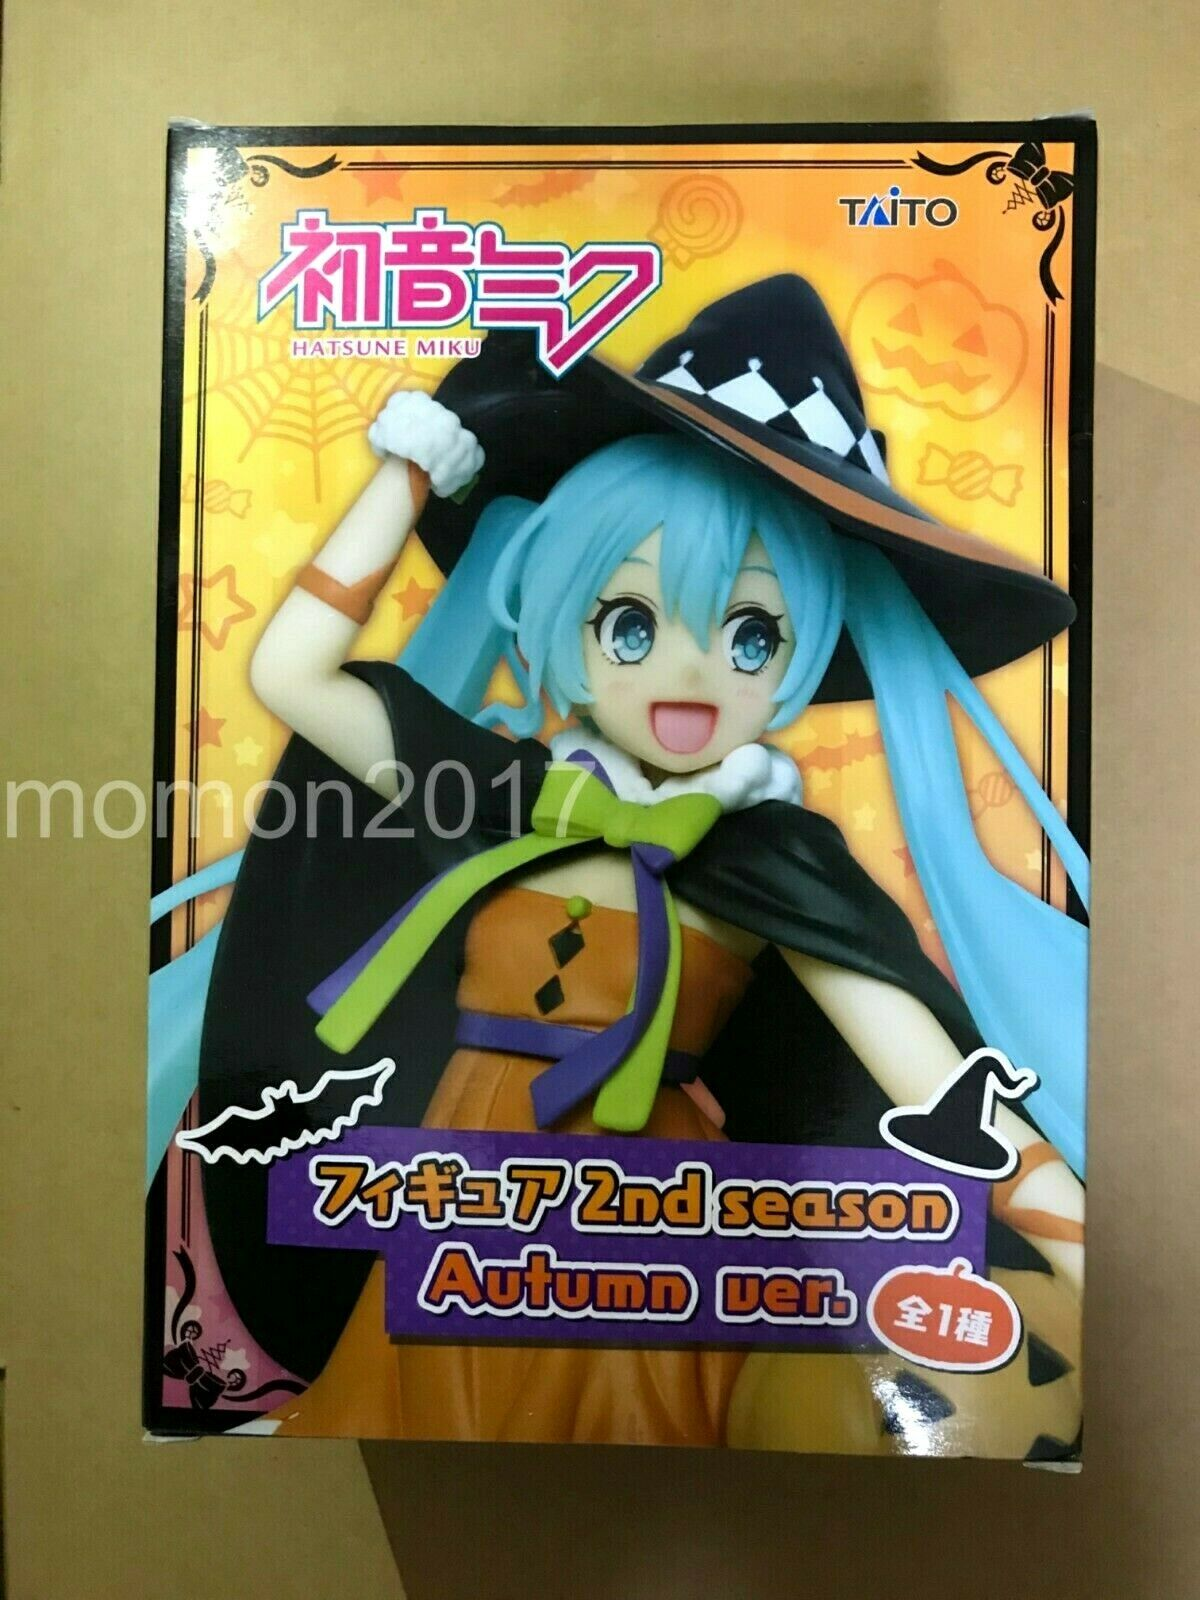 Hatsune Miku 2nd Season Autumn Htuttioween Ver cifra Taito Prize  from Japan  memorizzare